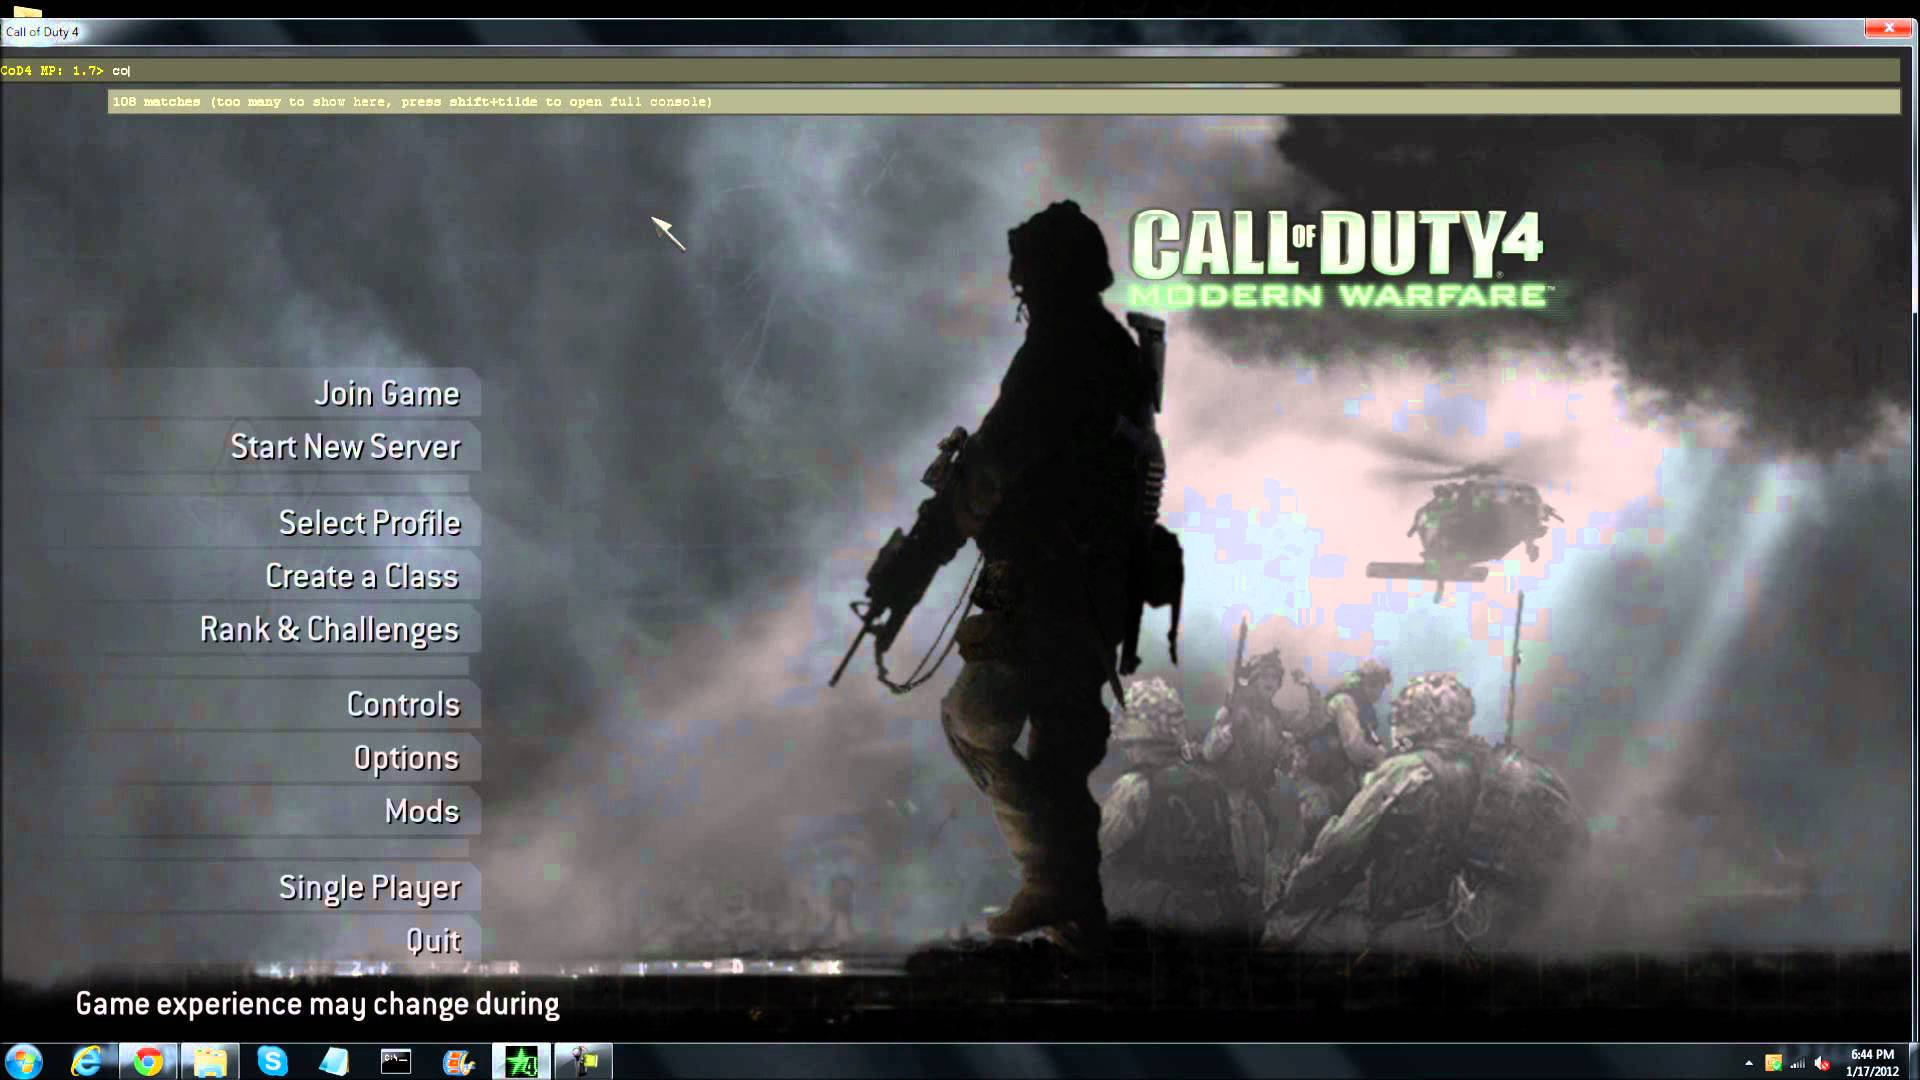 How To Install Call Of Duty 4 Server In Linux Via Putty